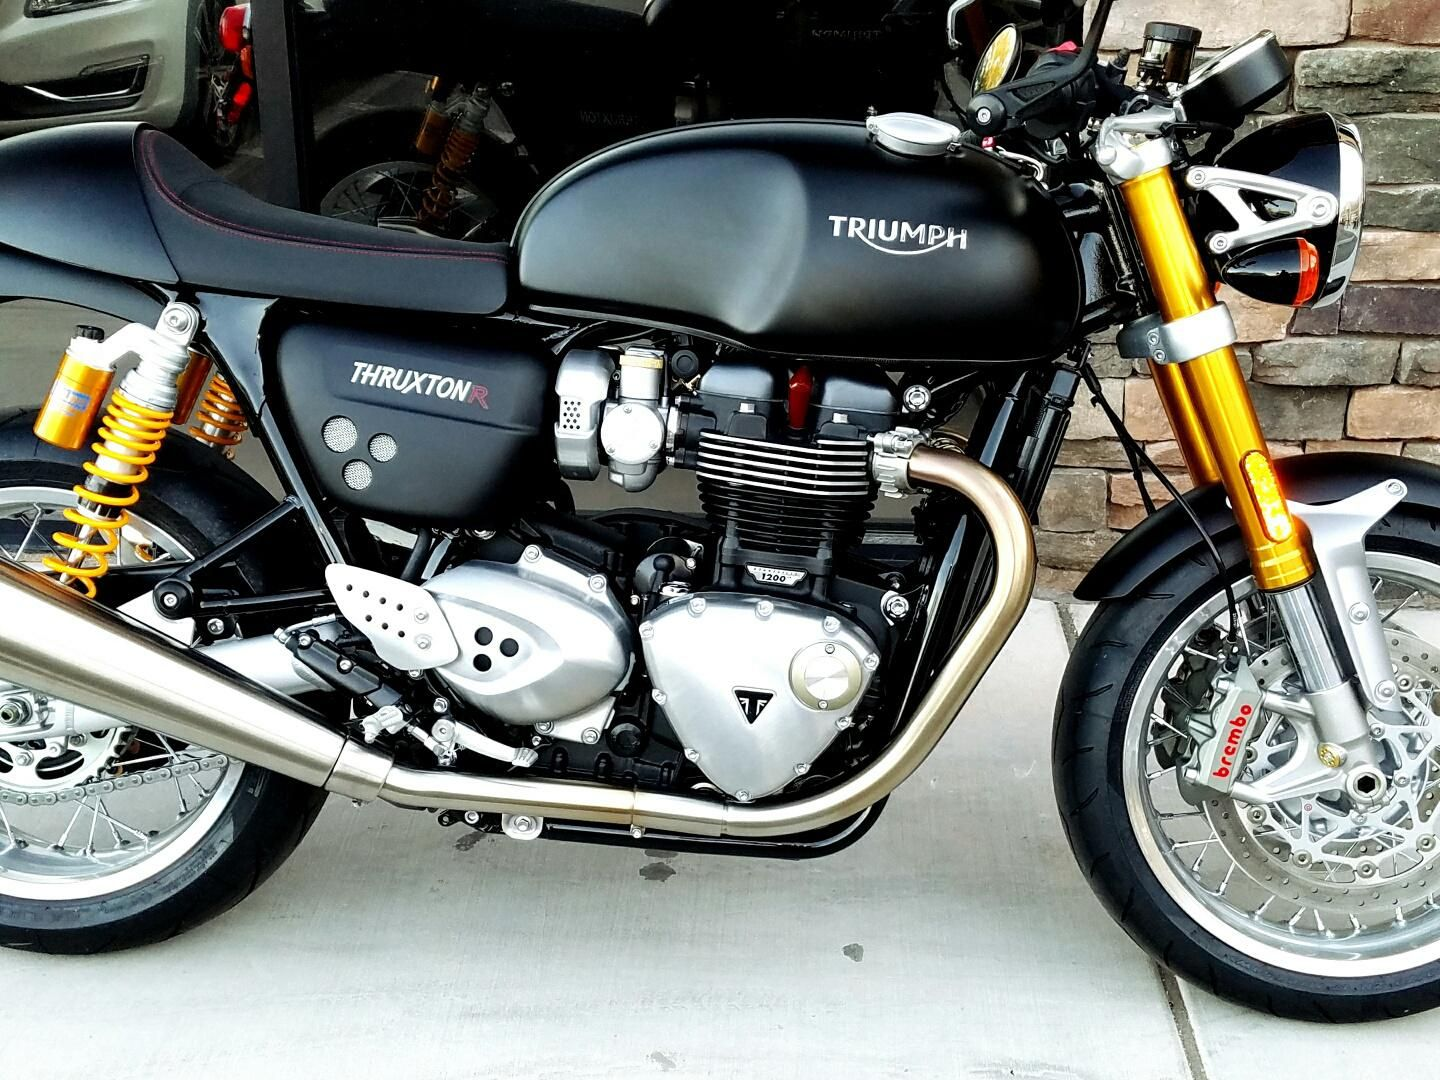 2016 triumph thruxton 1200 r for sale in las vegas nv freedom euro cycle of las vegas 702. Black Bedroom Furniture Sets. Home Design Ideas